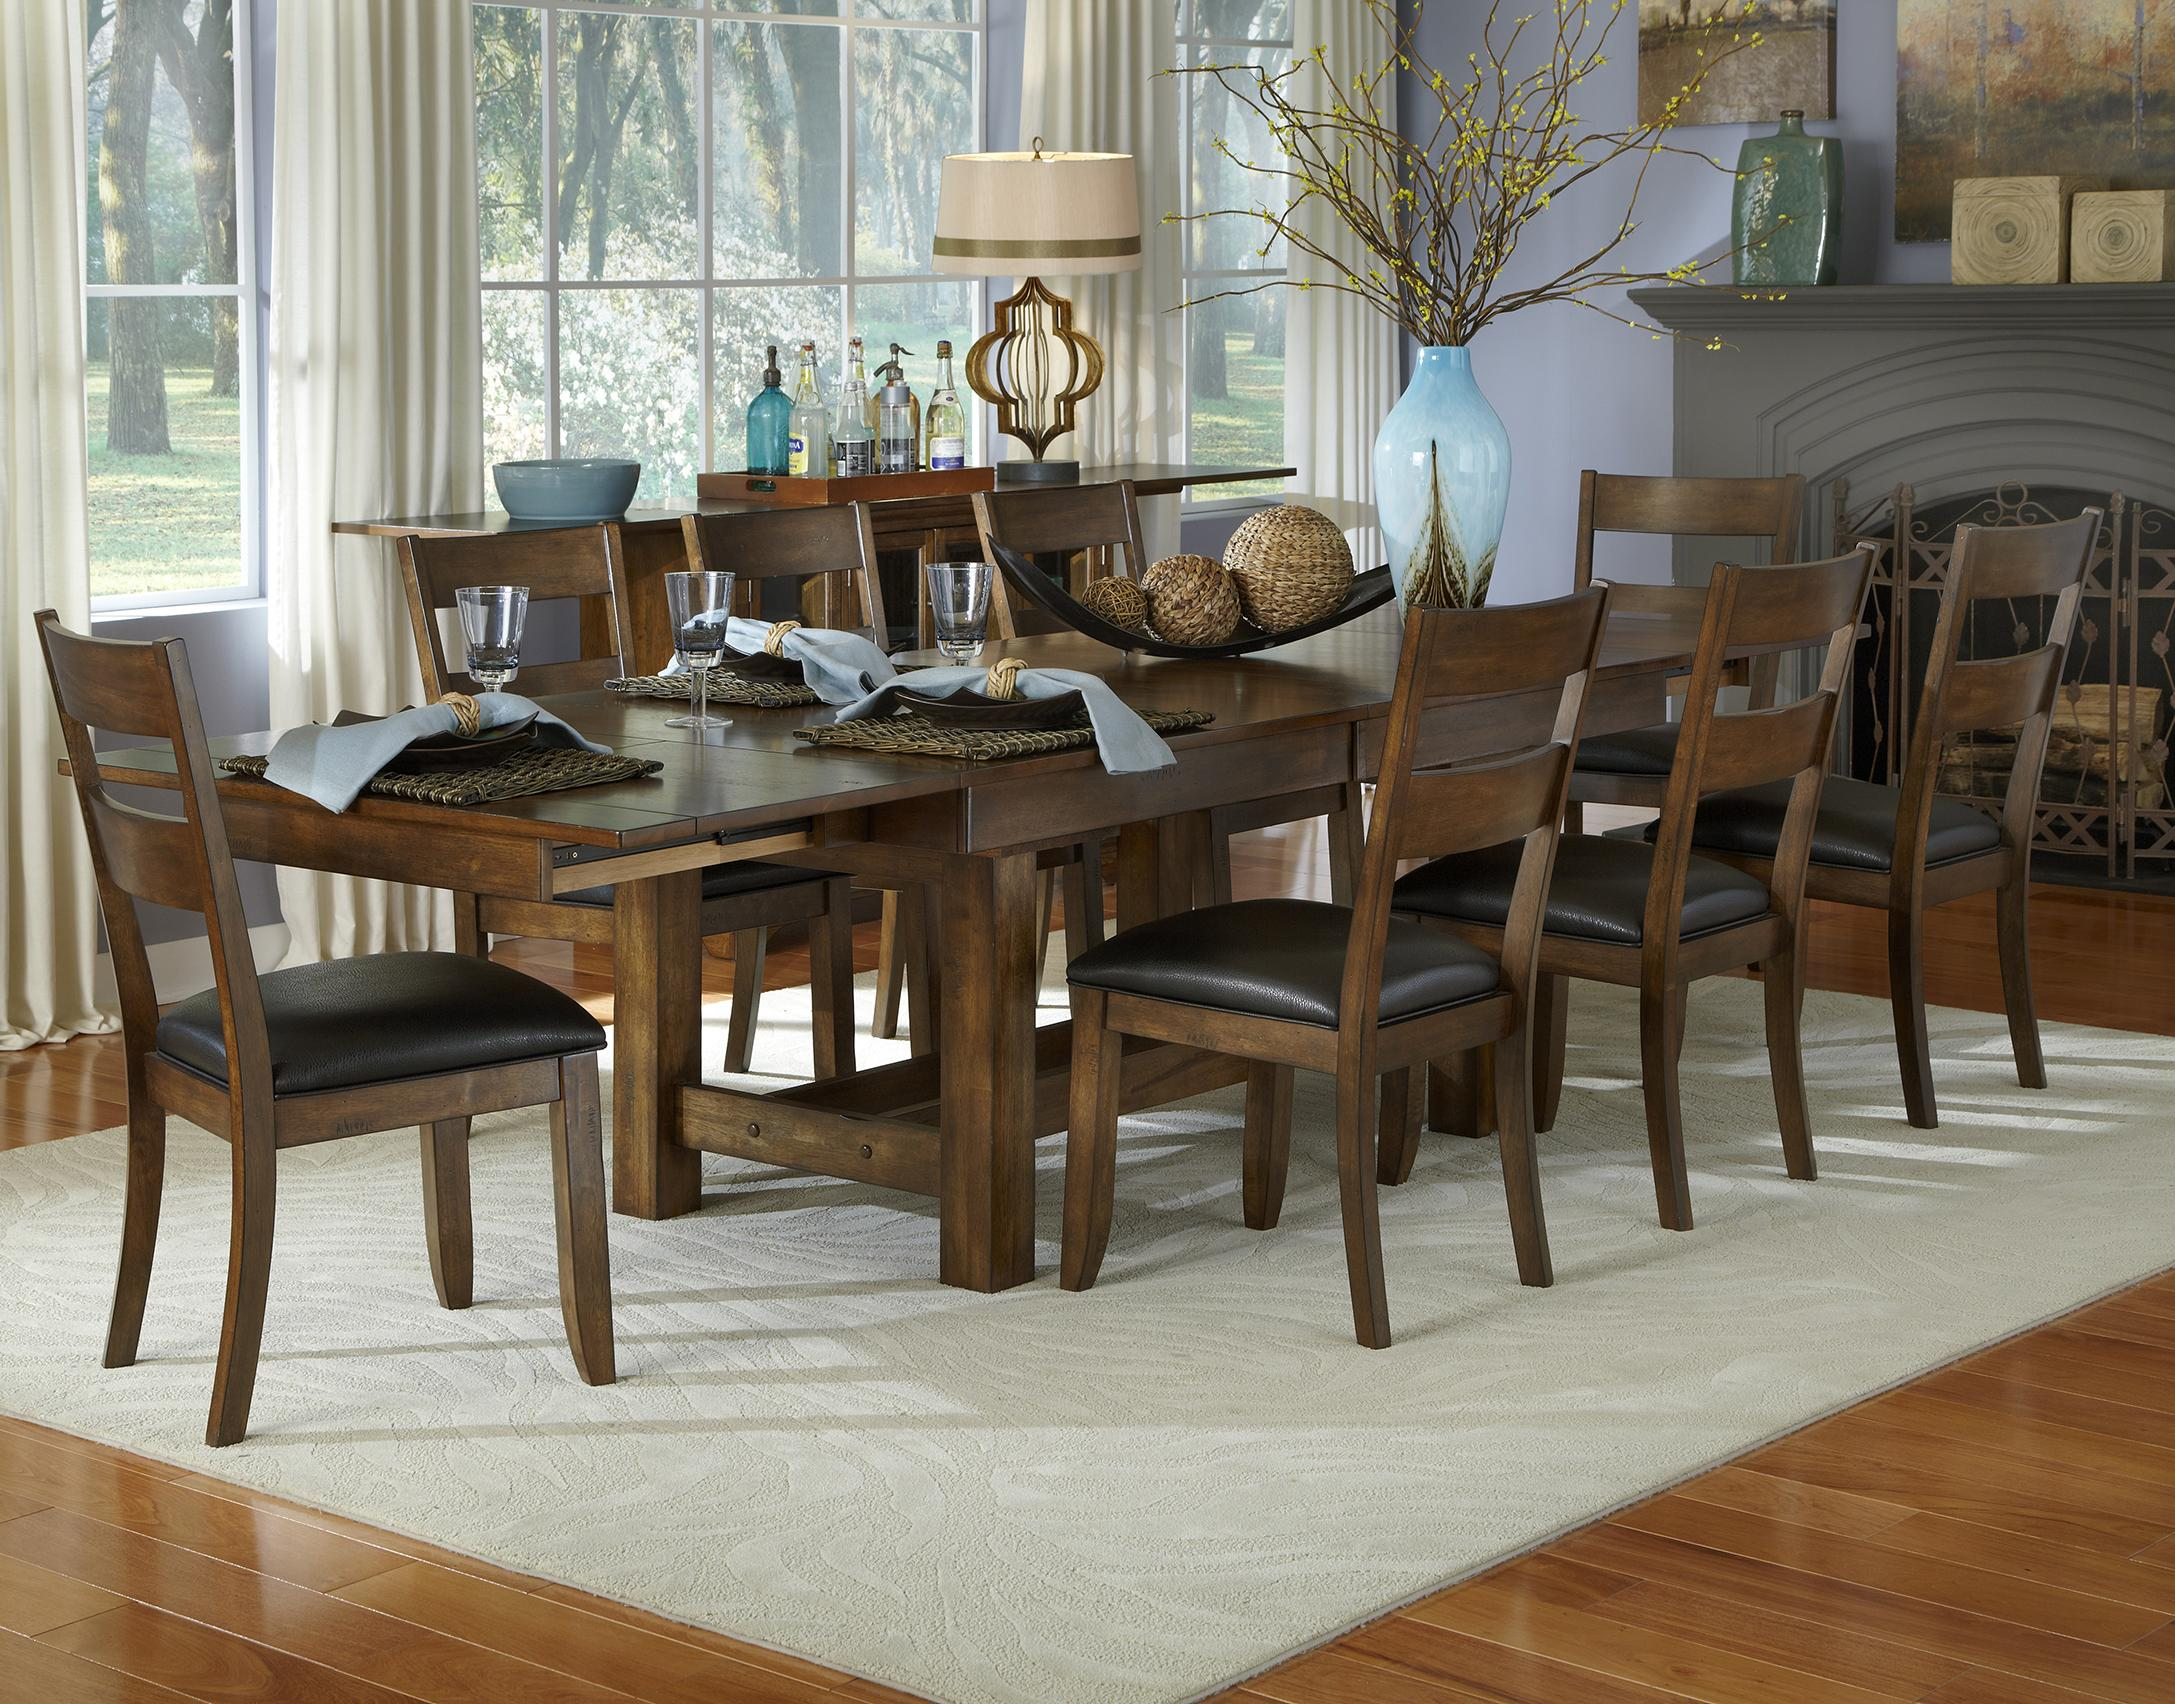 AAmerica Mariposa 9 Piece Table and Chairs Set  - Item Number: MRP-RW-6-08-0+8x2-55-K